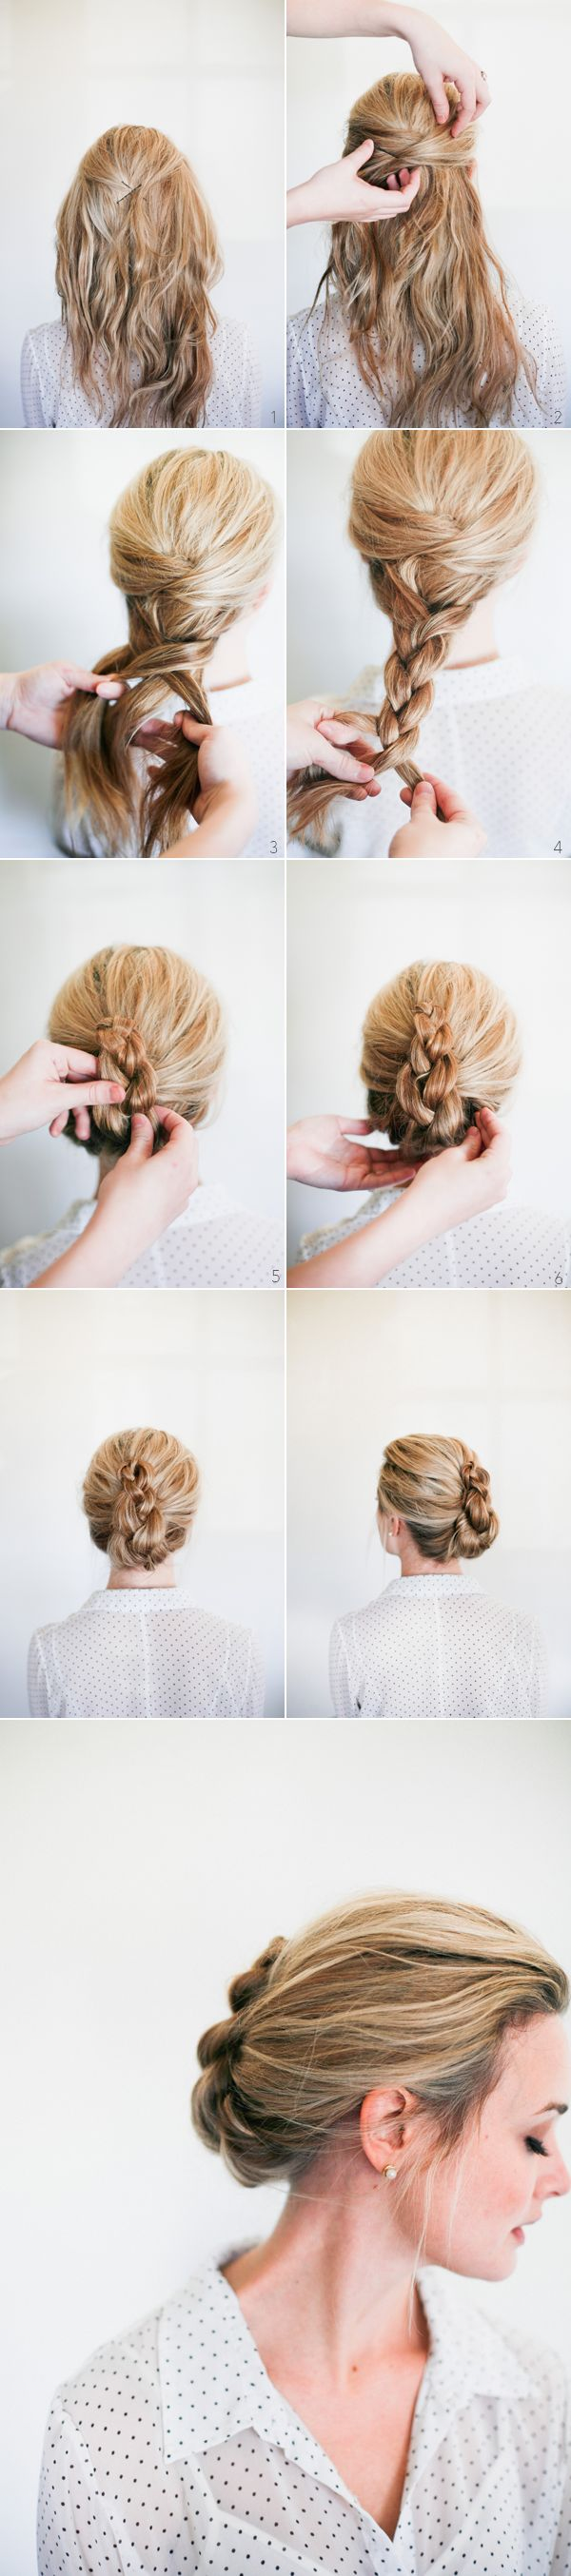 372 best Hairdo Idea images on Pinterest | Cute hairstyles, Hair ...